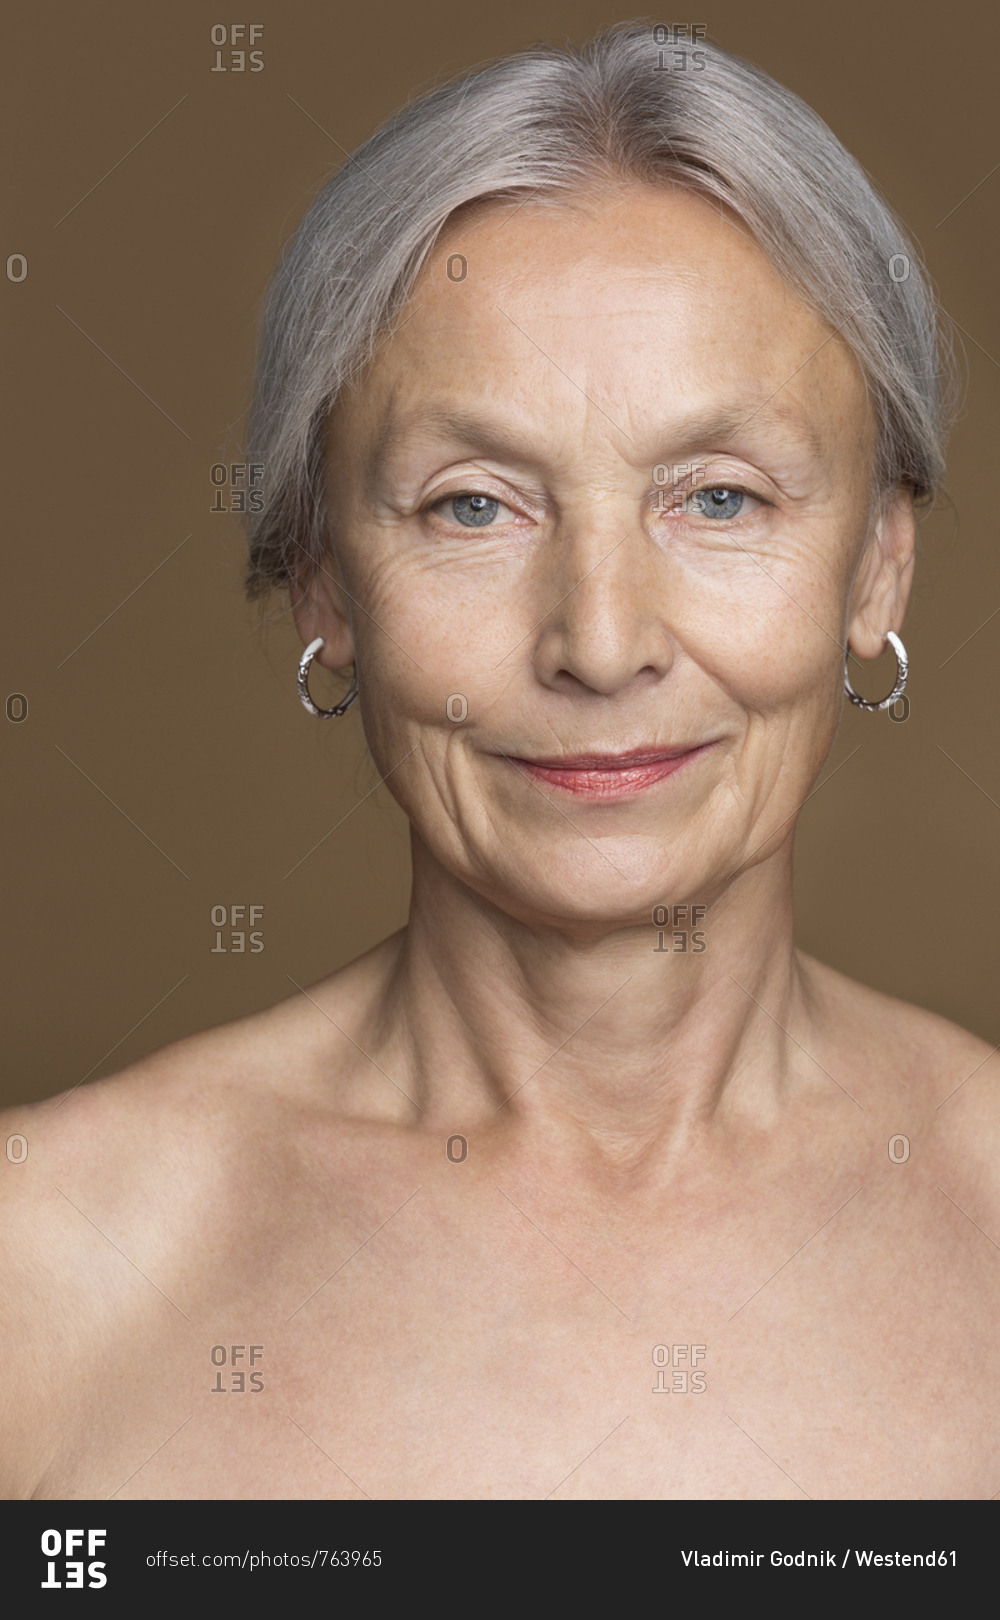 Mature women smiling nude Portrait Of Naked Senior Woman With Grey Hair In Front Of Brown Background Stock Photo Offset